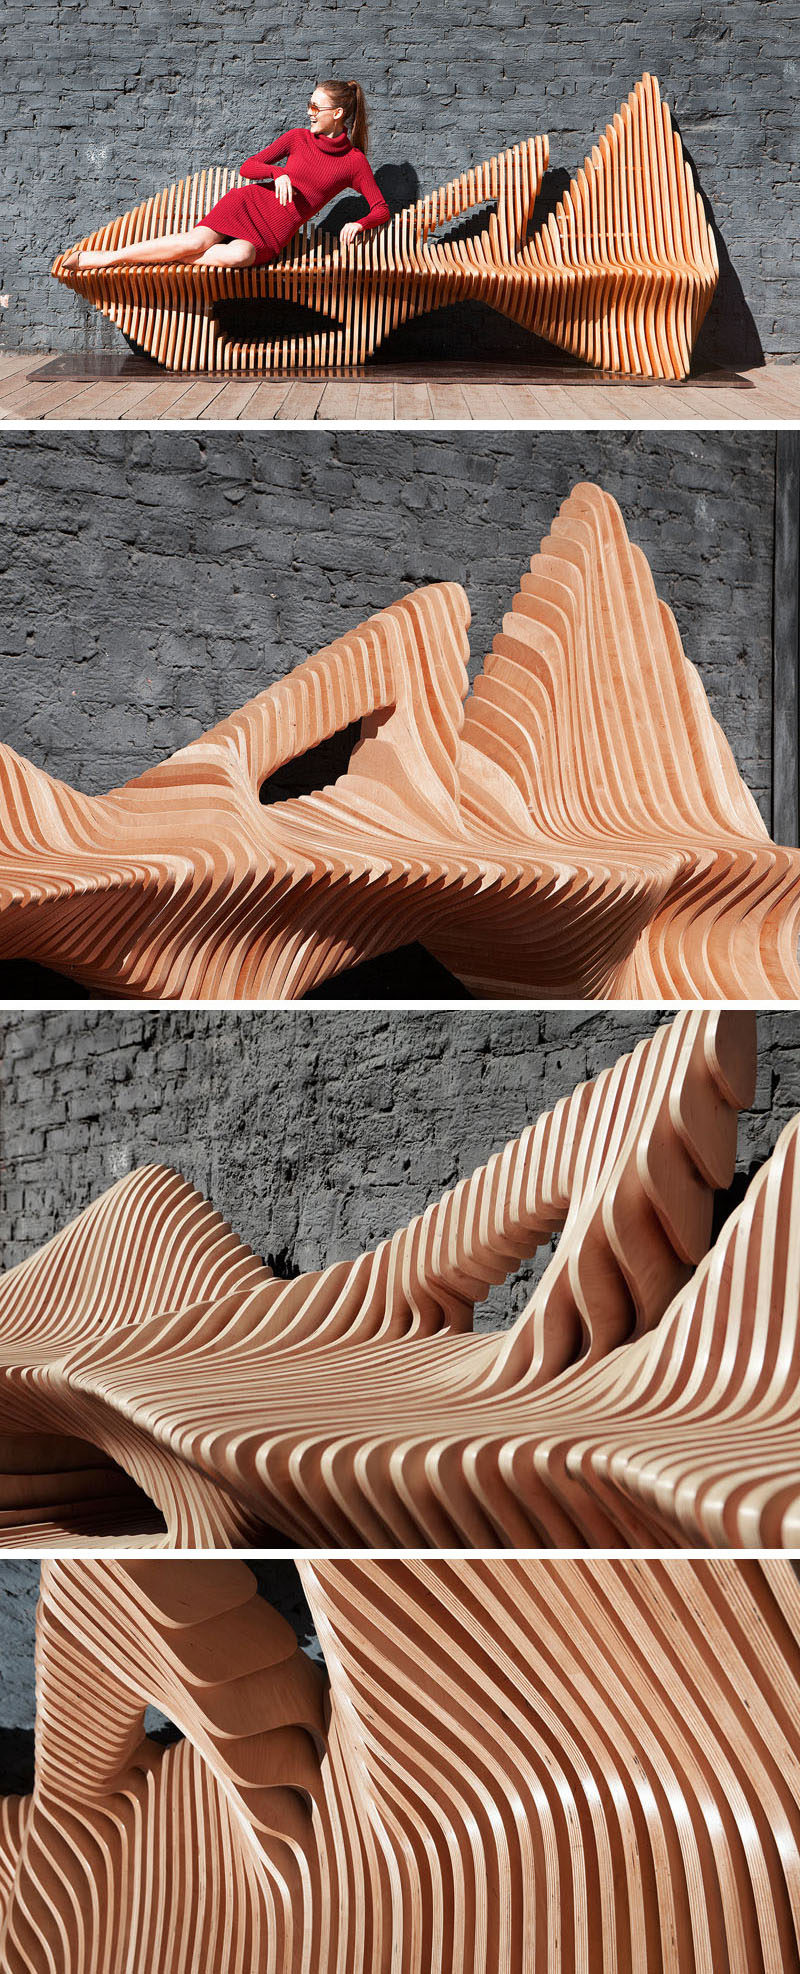 Oleg Soroko has designed an organically shaped, sculptural wooden bench named the Falcon Bench, inspired by the bird of the same name.